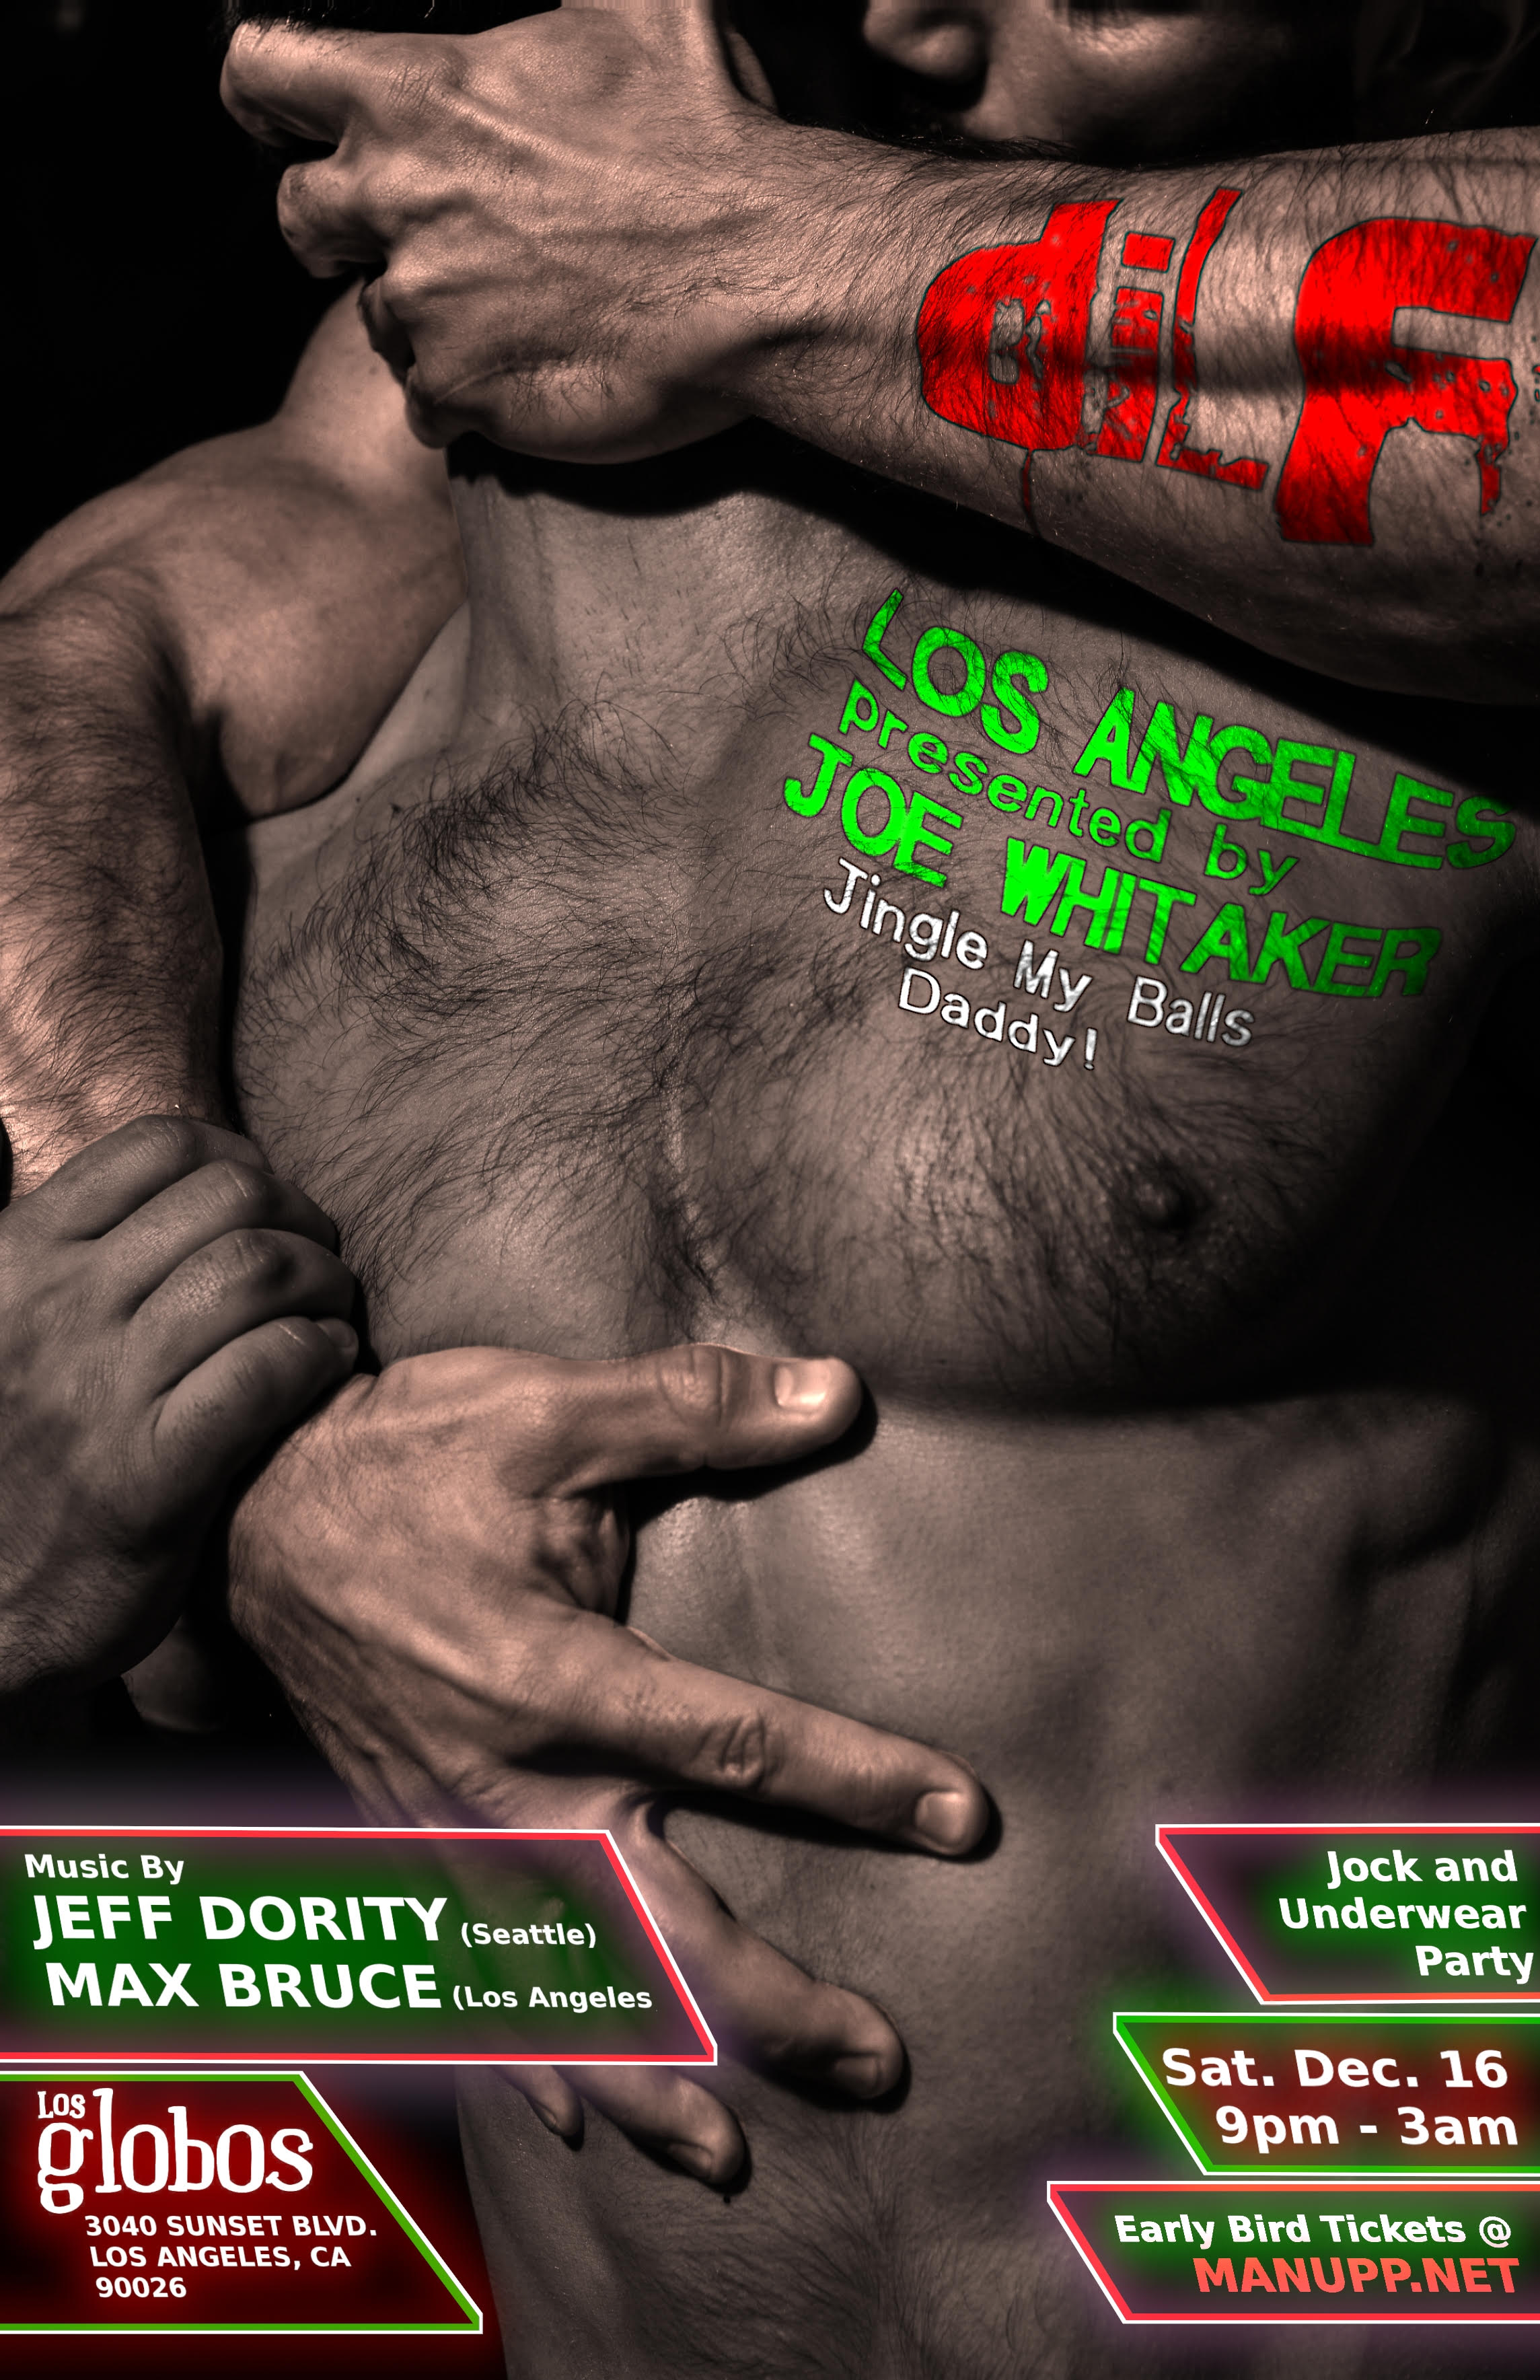 DILF Los Angeles Jock/Underwear Party by MAN UPP & Joe Whitaker